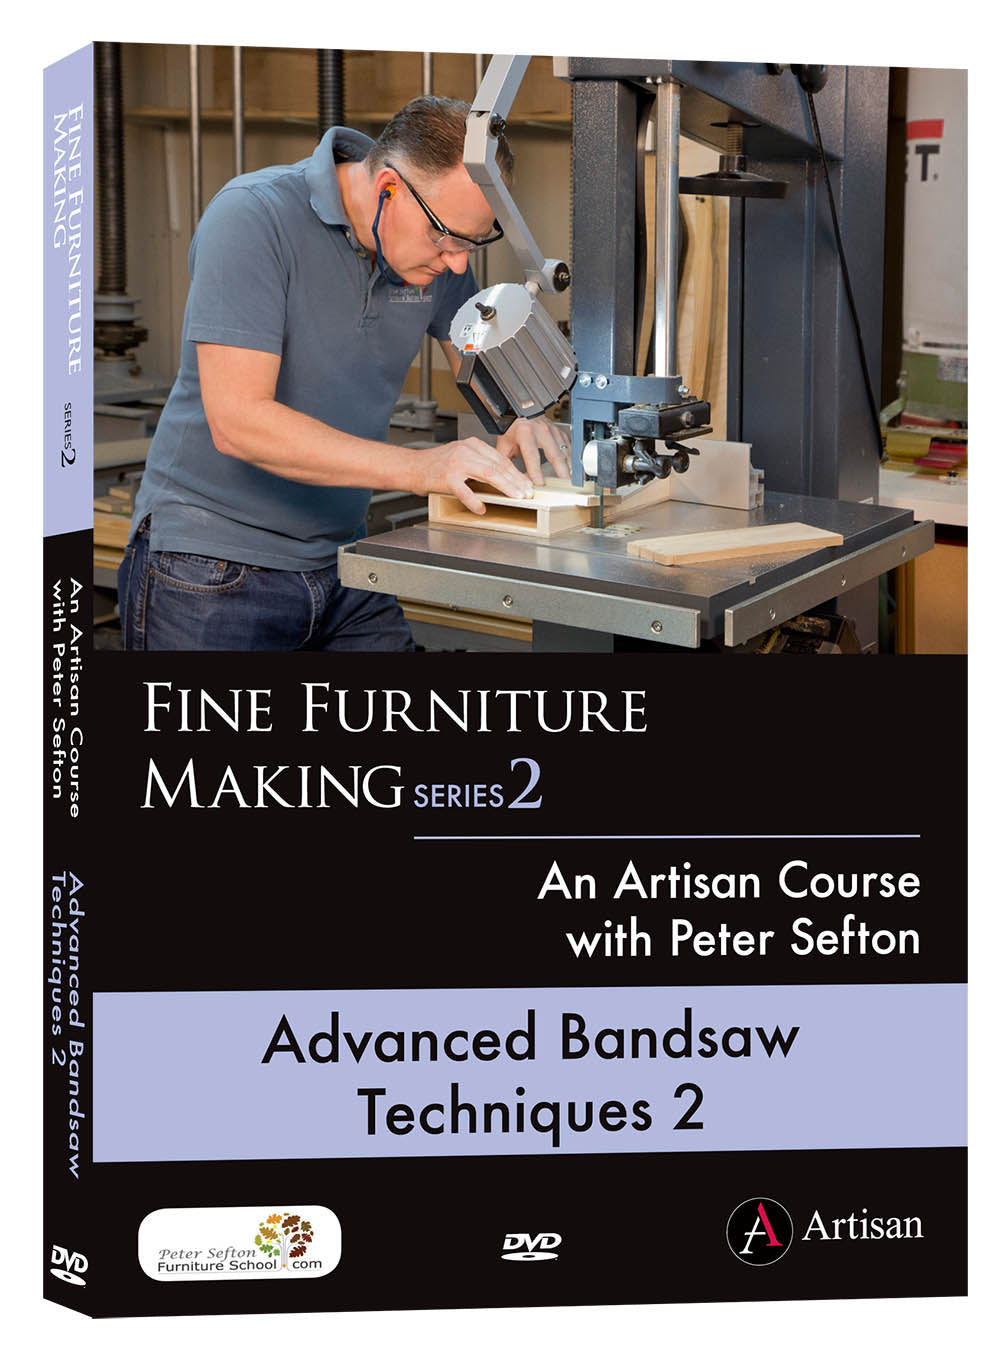 Advanced Bandsaw Techniques 2 - Peter Sefton (DVD)